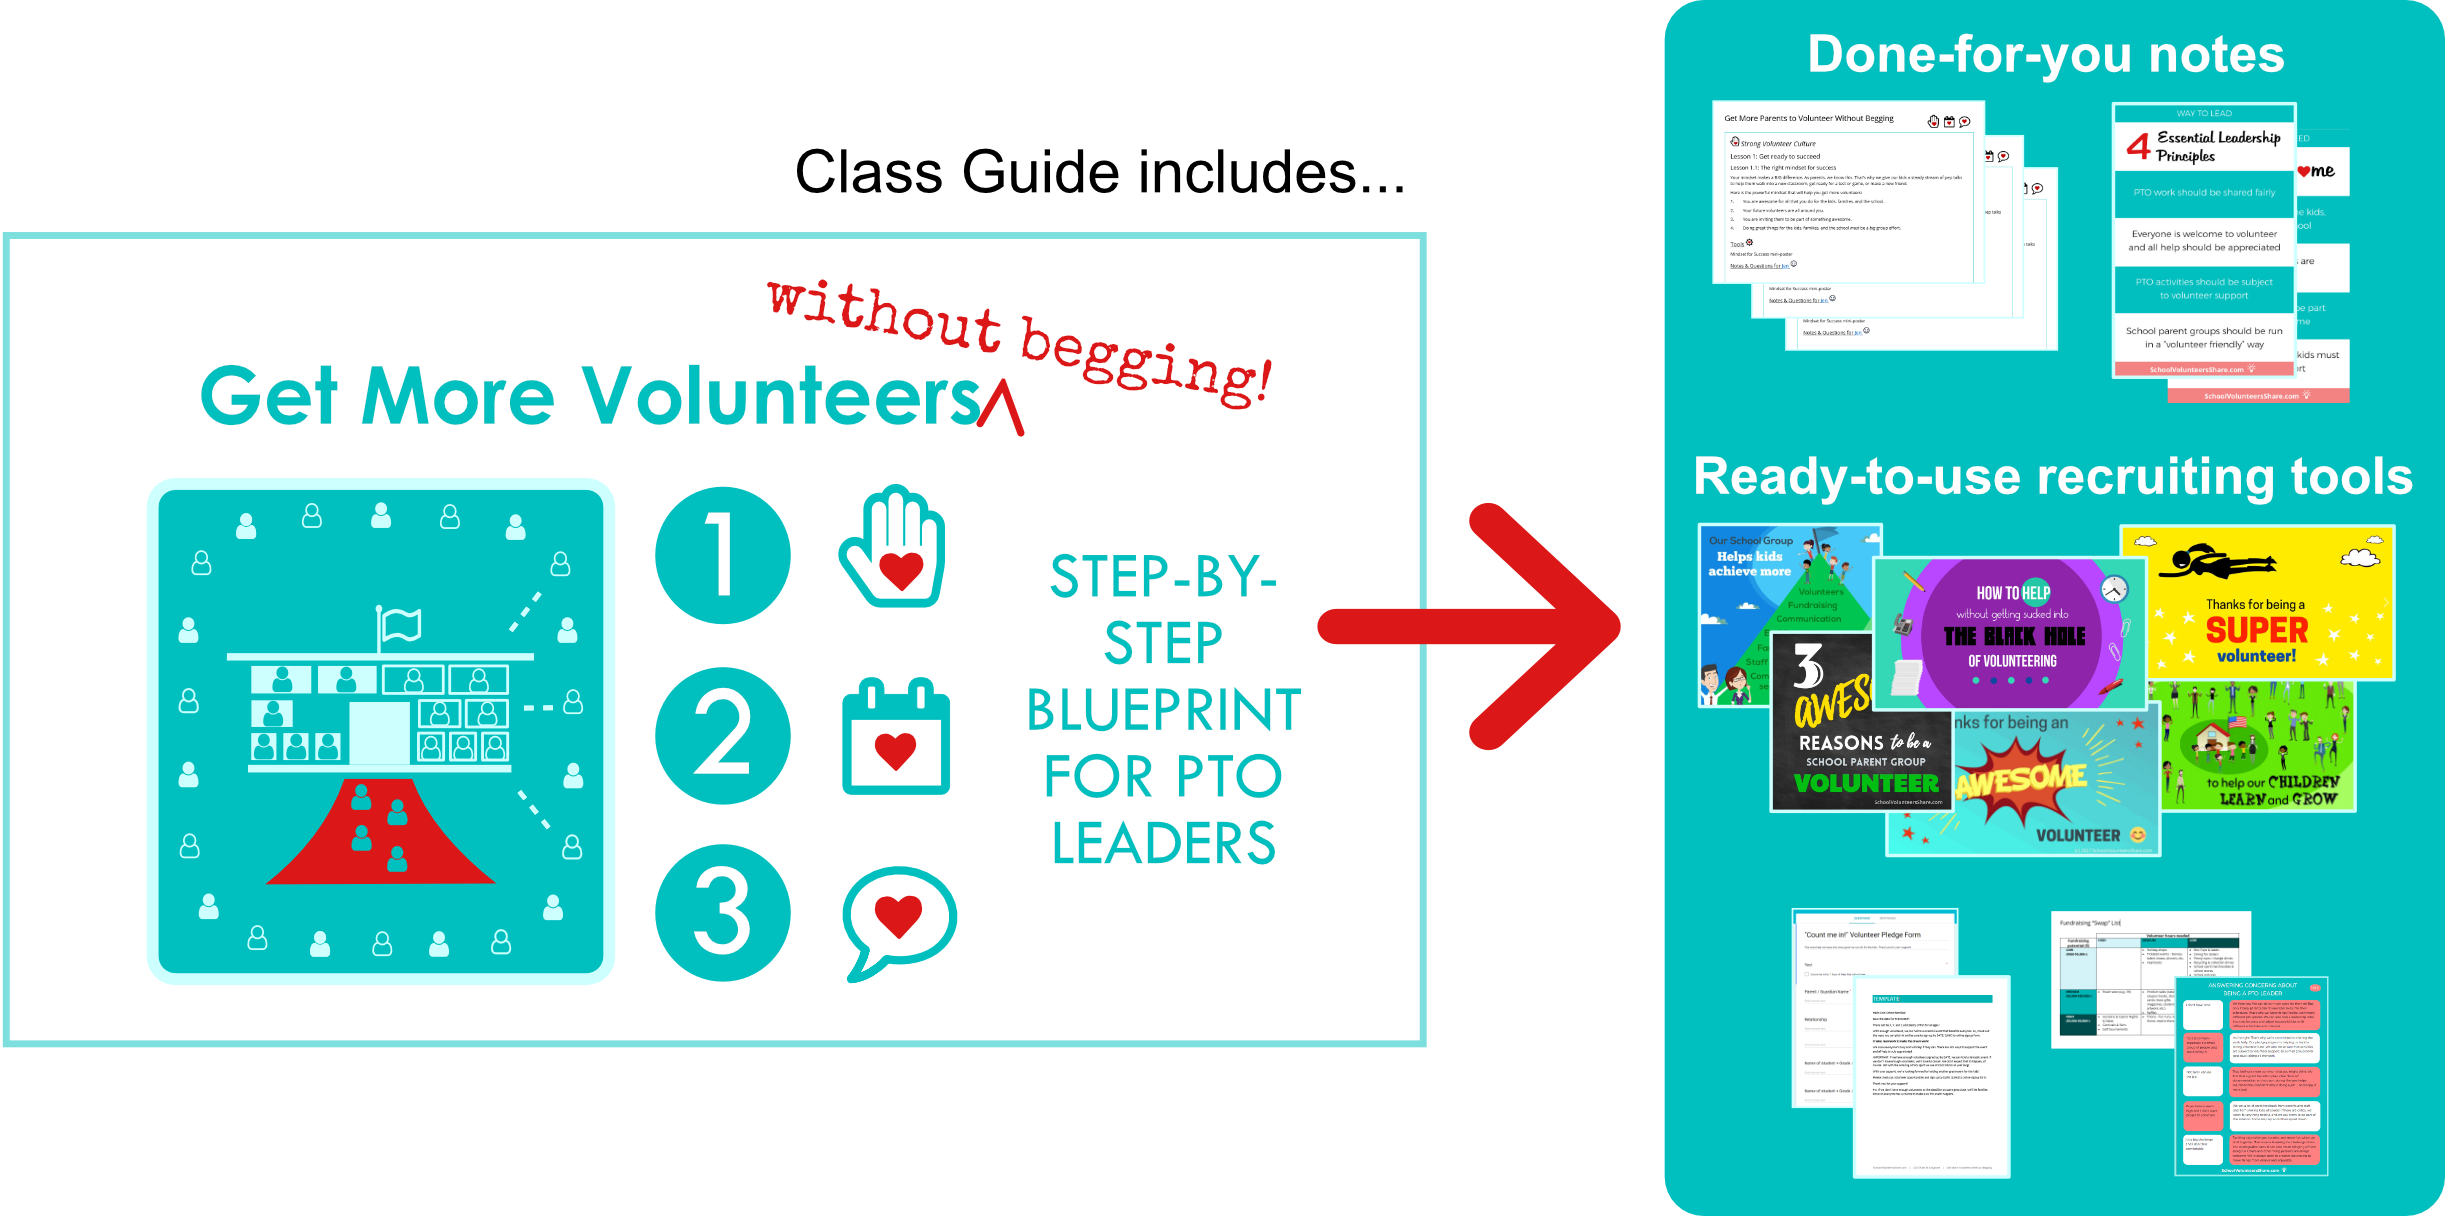 FREE video training for PTO volunteers: Get More Volunteers Without Begging: step-by-step blueprint for PTO leaders who are tired of getting stuck doing EVERYTHING